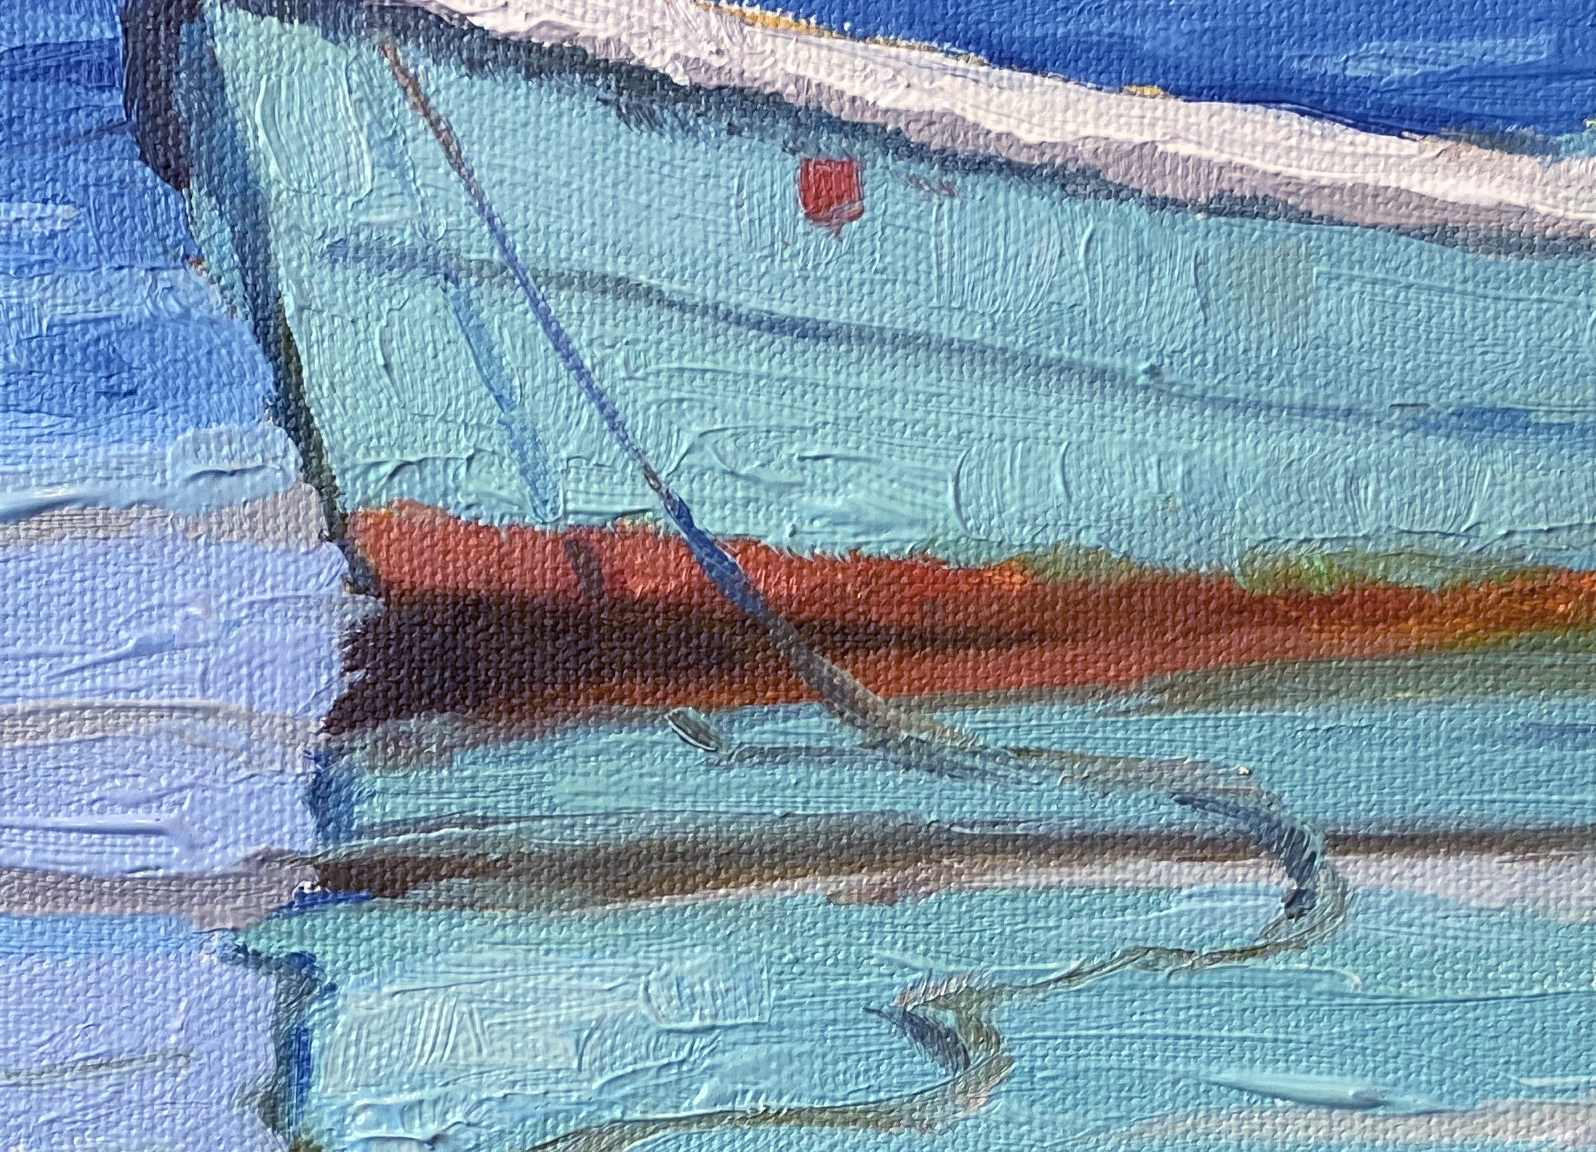 The Provincetown Moors painting detail